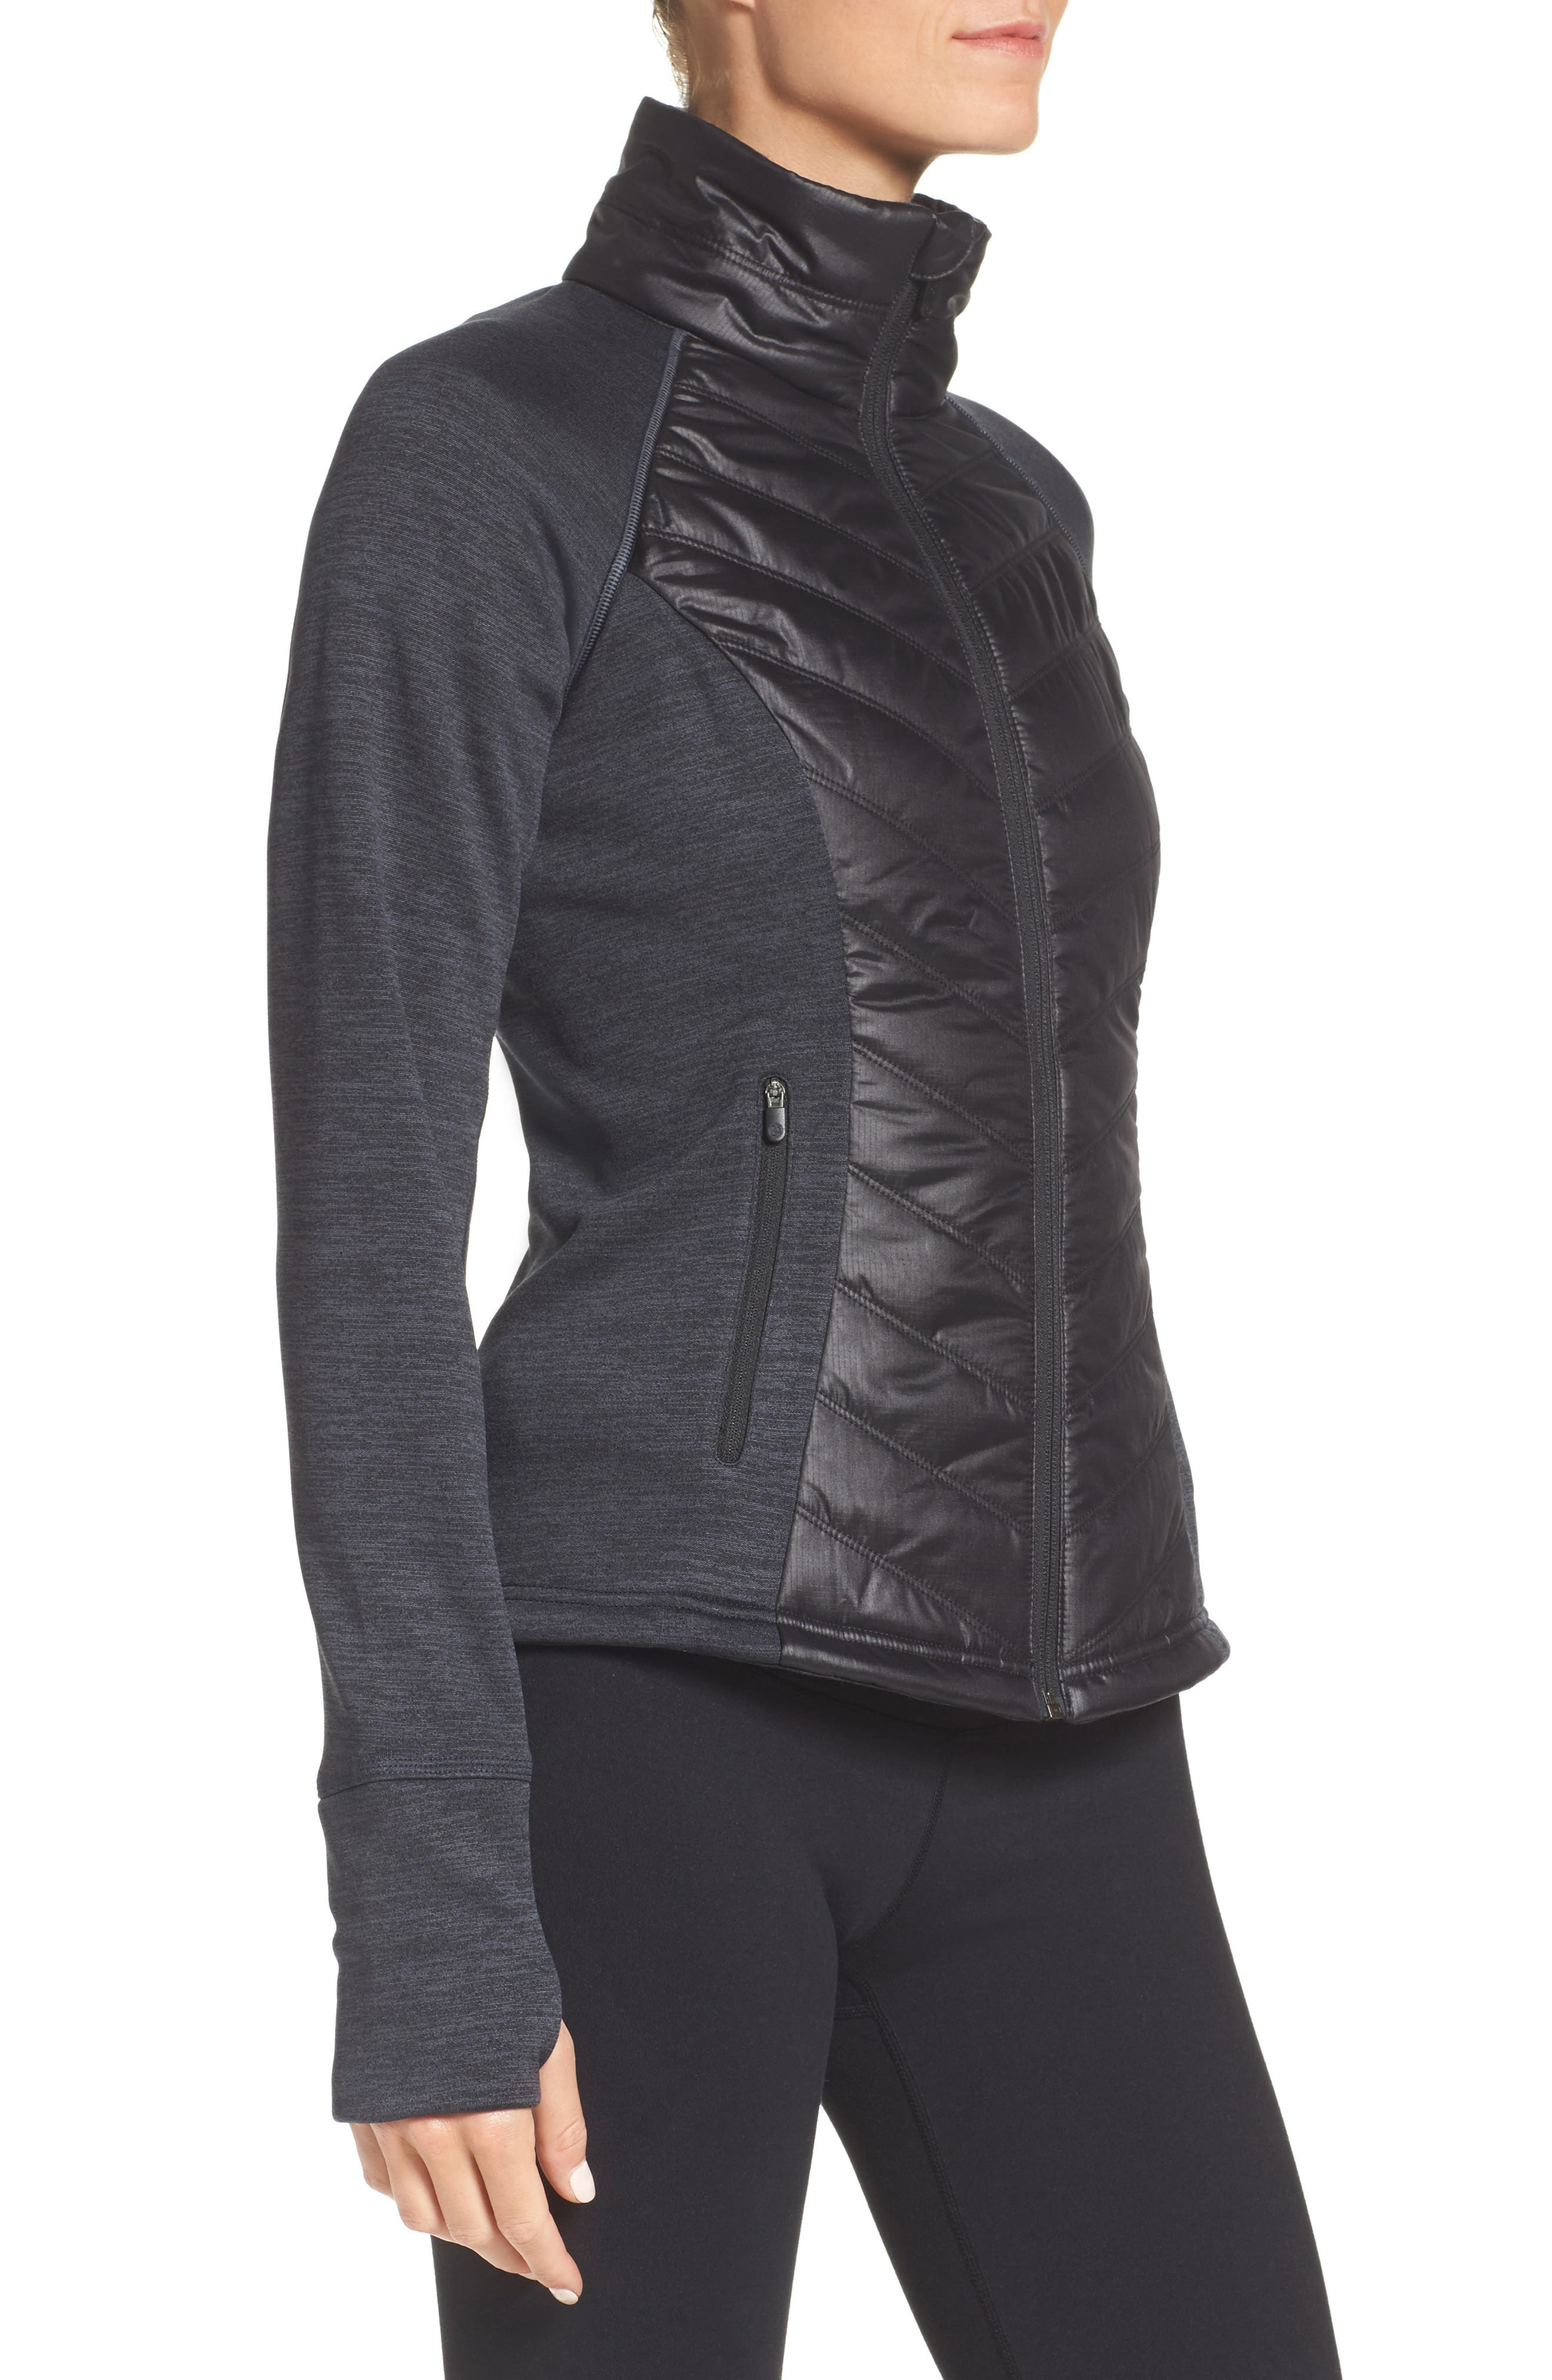 Zelfusion Reflective Quilted Jacket,                             Alternate thumbnail 3, color,                             001